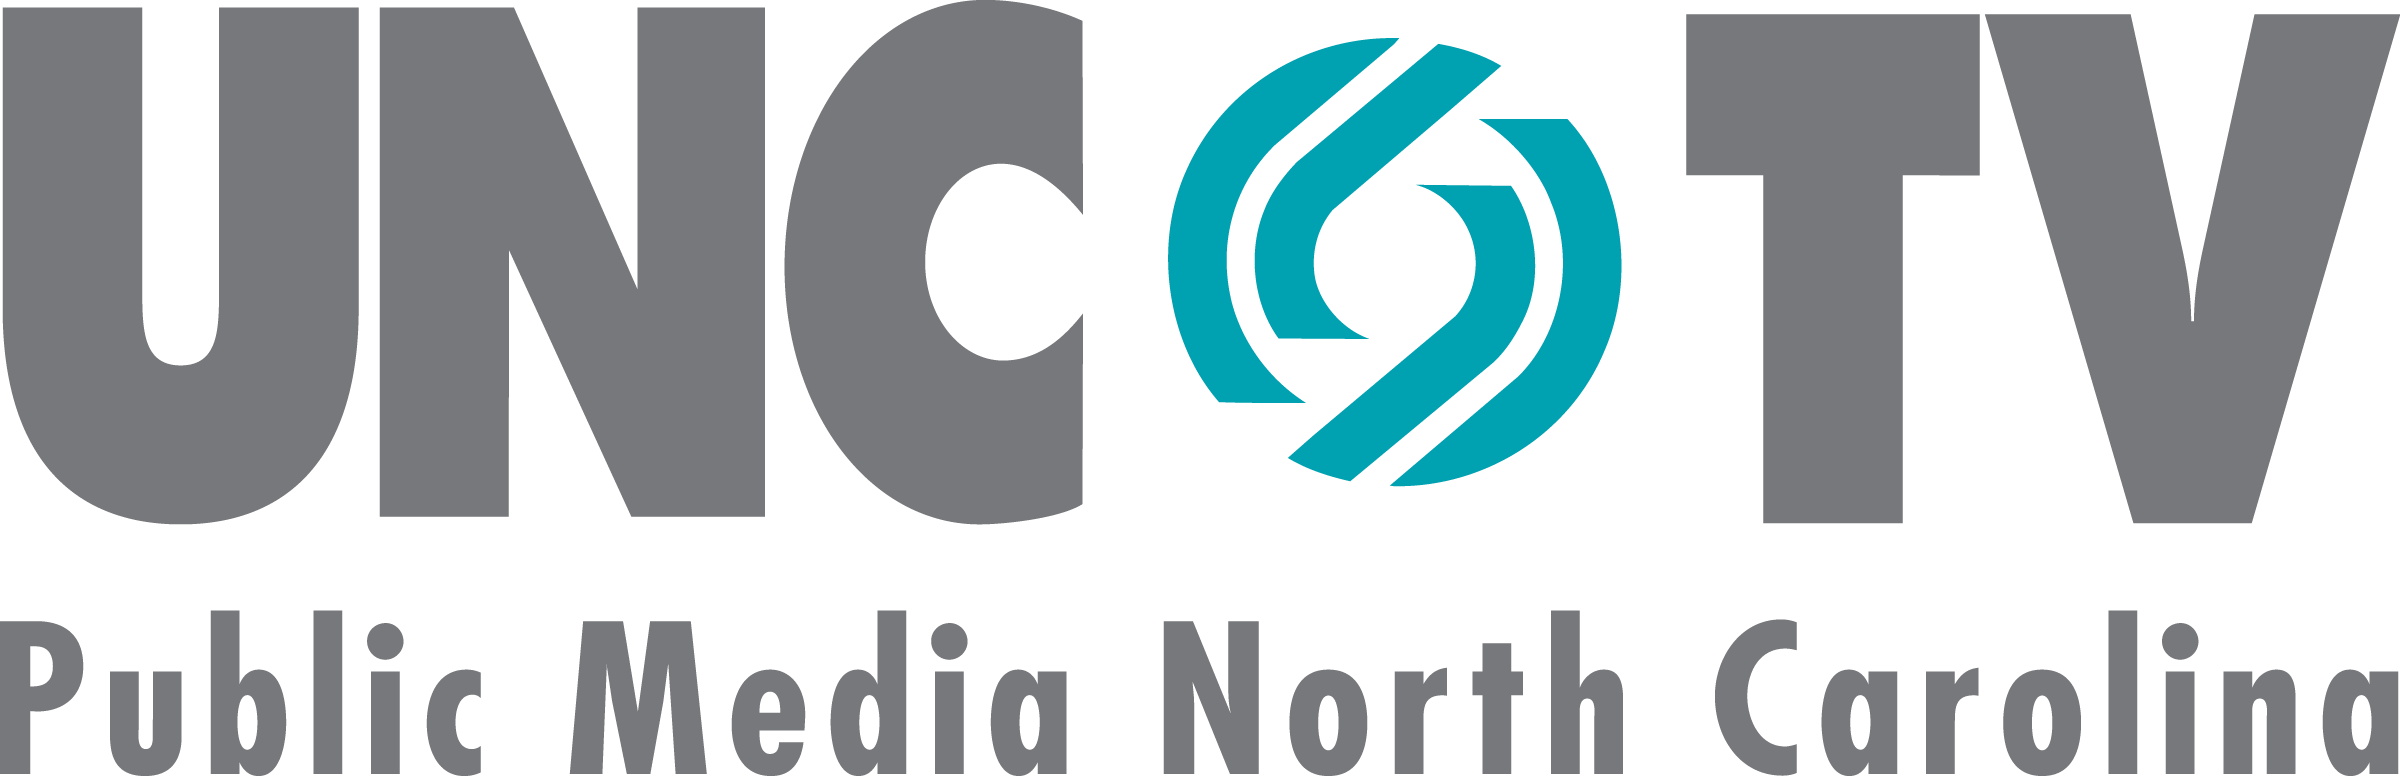 UNC-TV Public Media North Carolina